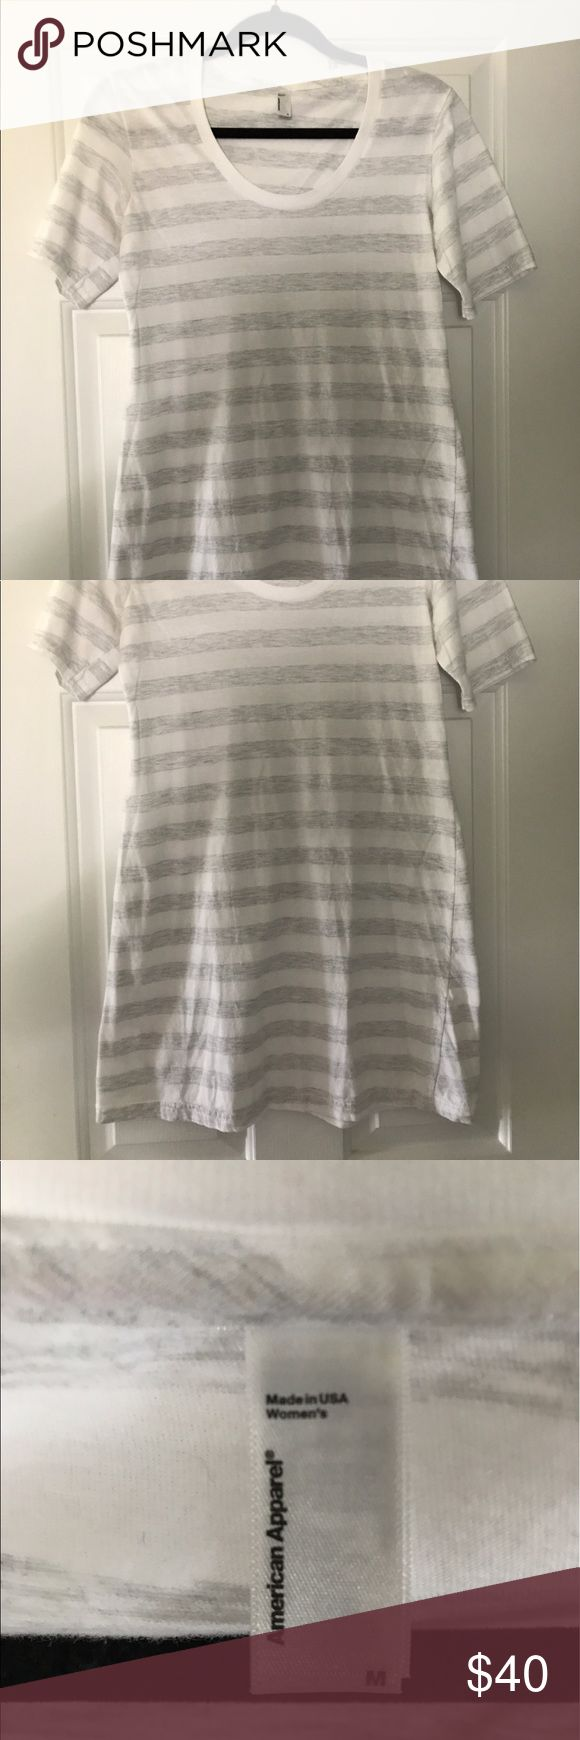 American Apparel Striped TShirt Dress Super cute and comfy striped t shirt dress. In like-new condition, only worn a few times. American Apparel Dresses Mini